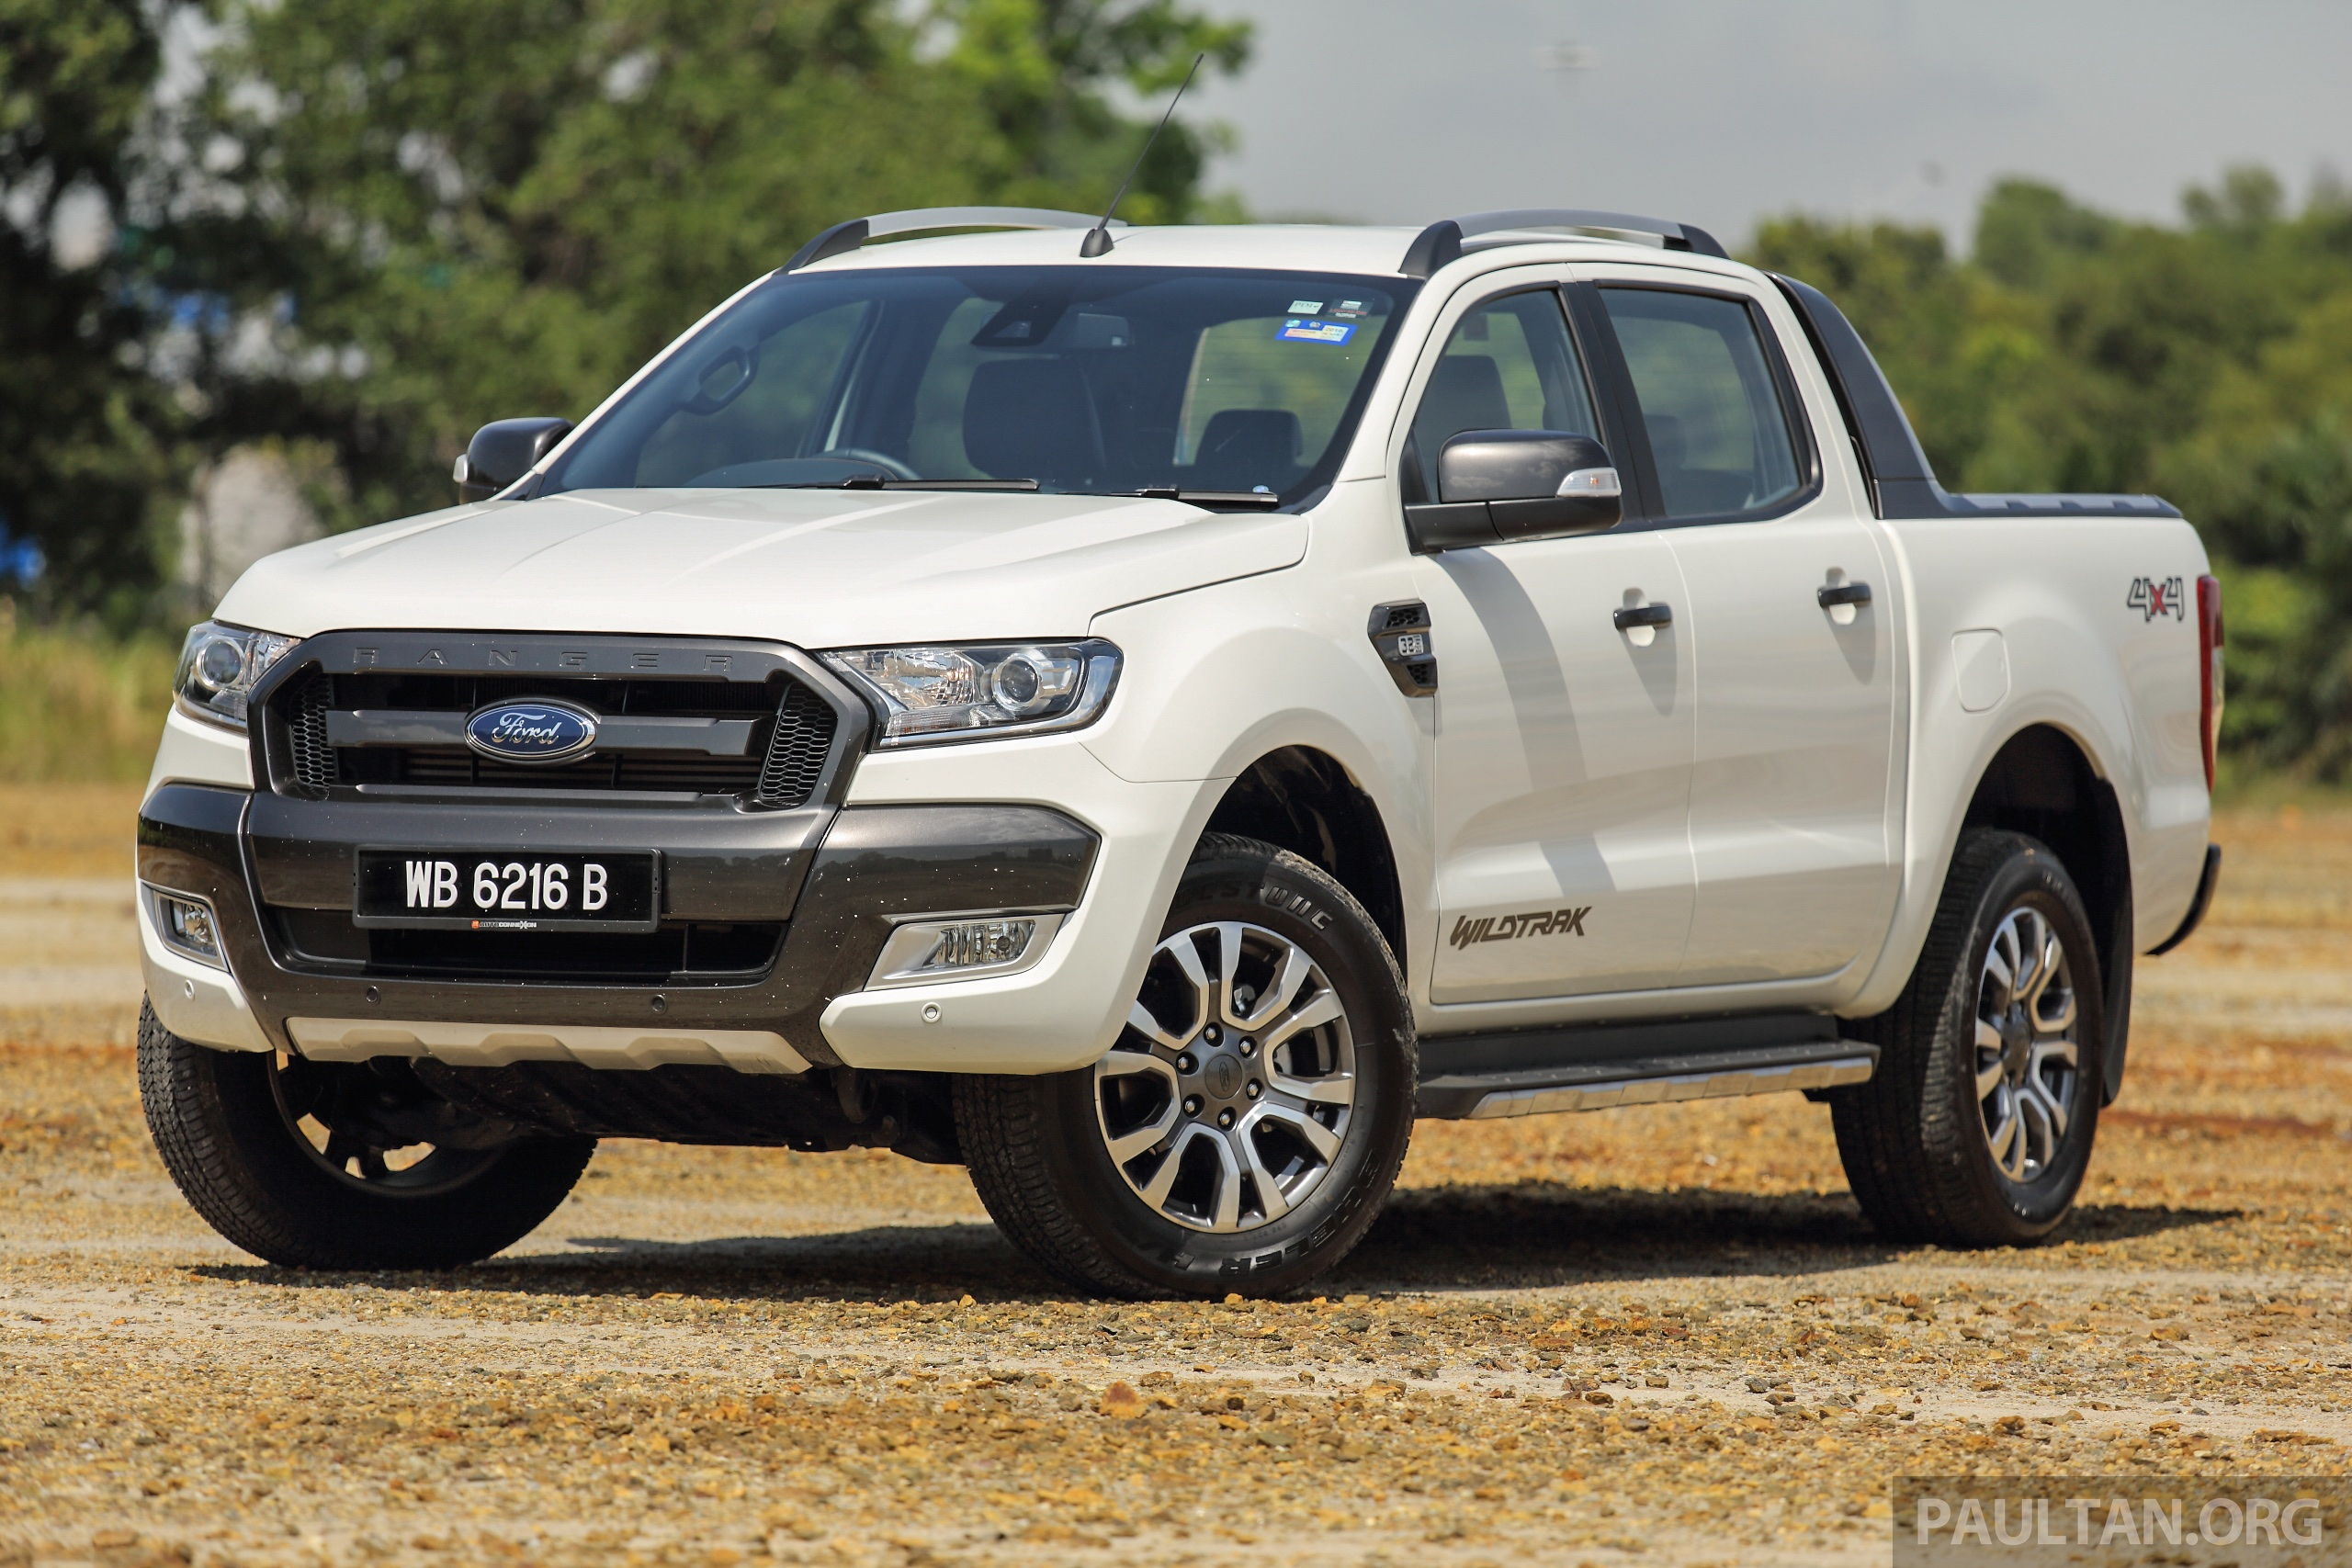 2016 Ford Ranger Prices Revised 2 2 3 2 Xlt Variants Up Between